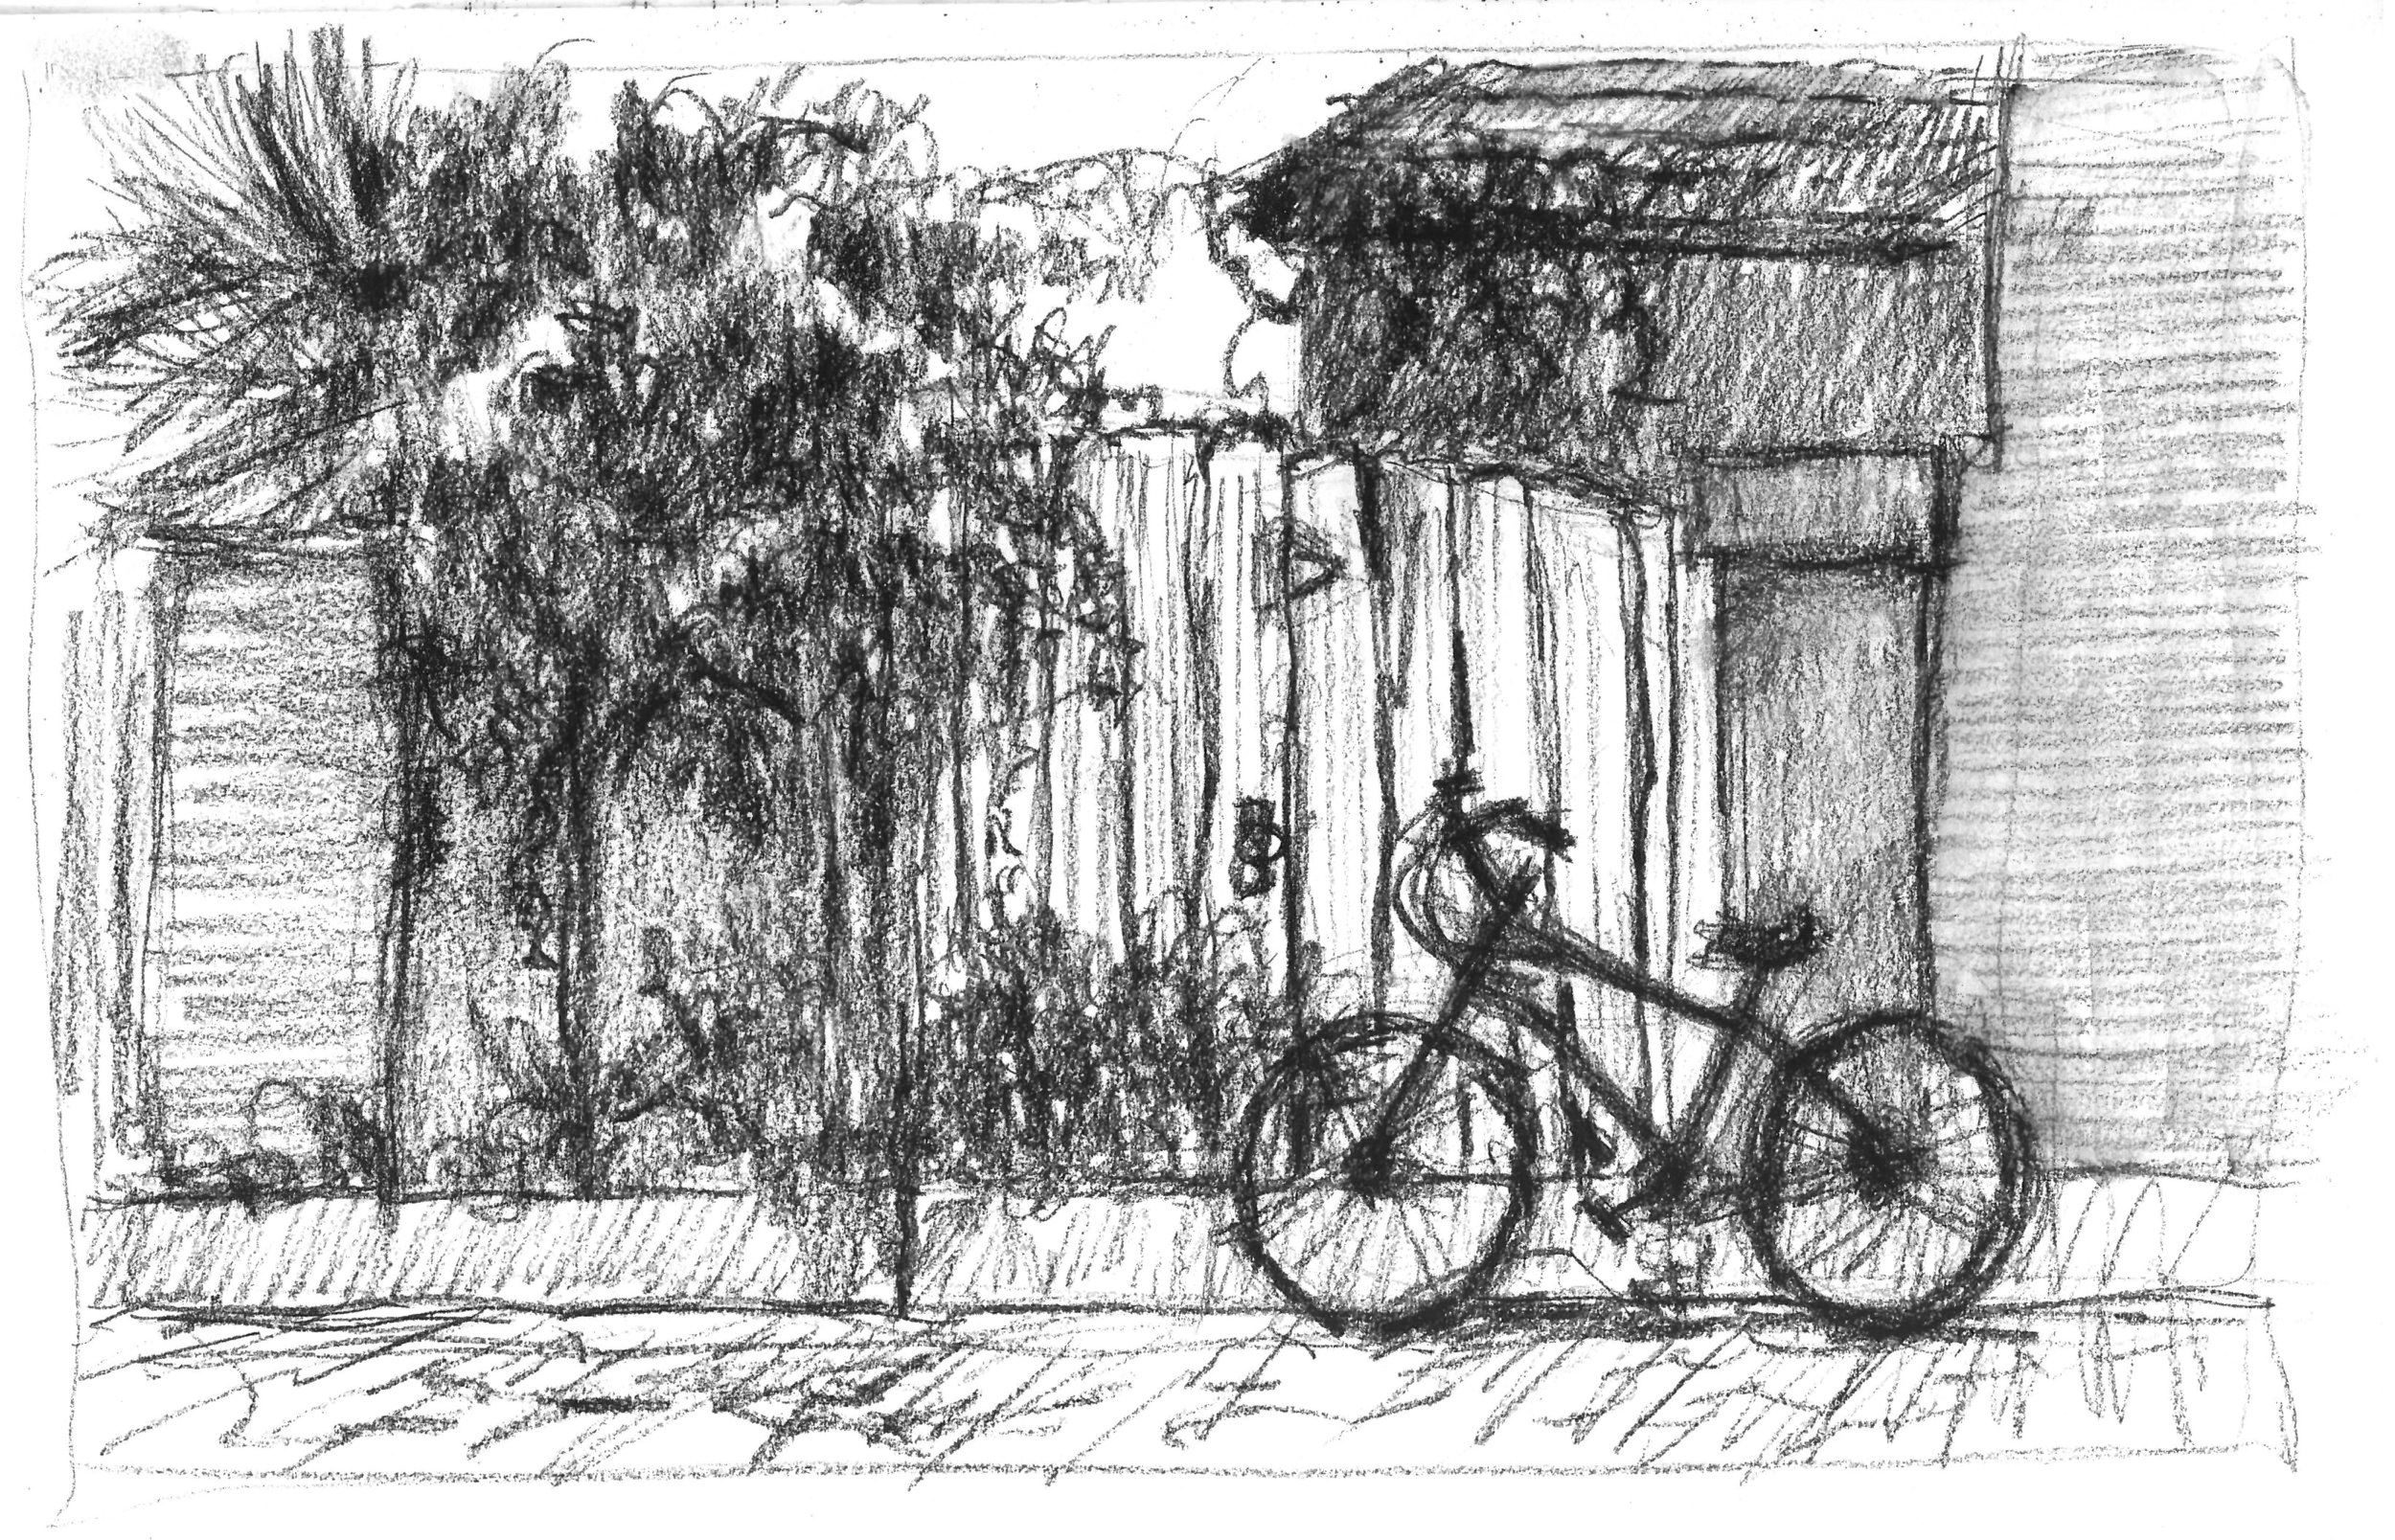 Joel's bike parking across the street from the Aviles Street Gallery in St. Augustine.